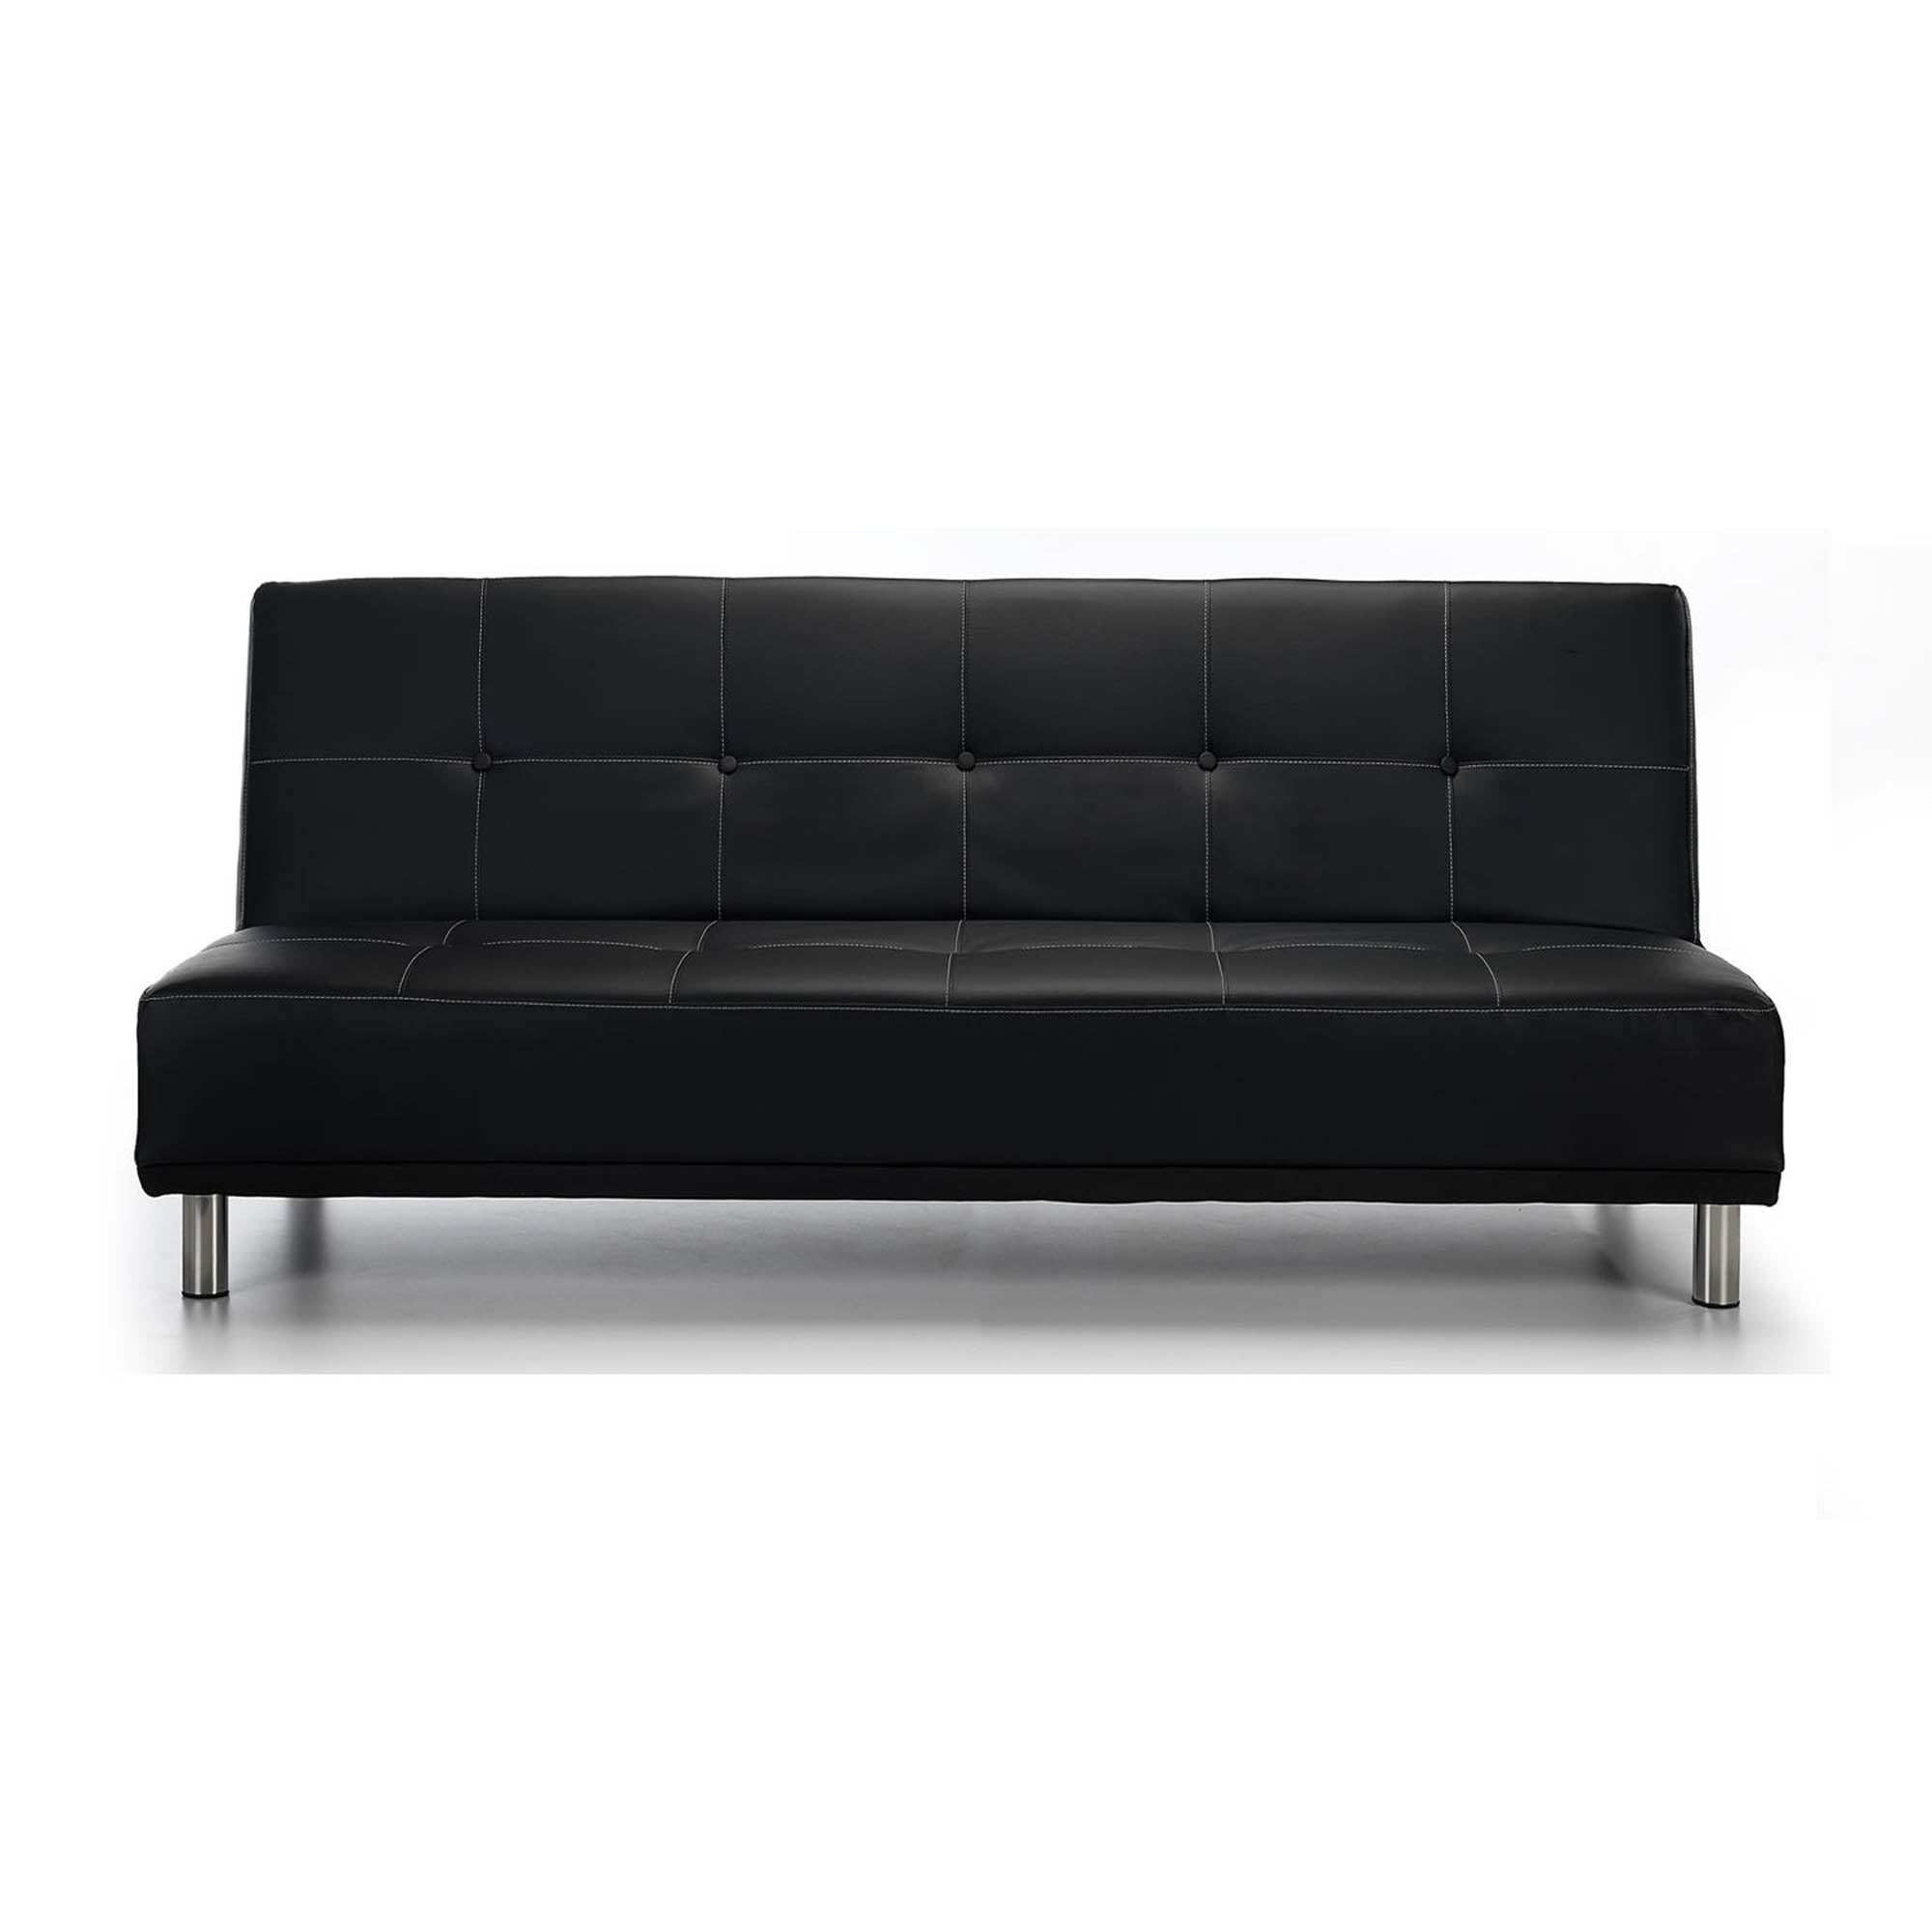 Photo of Duke faux leather sofa bed black